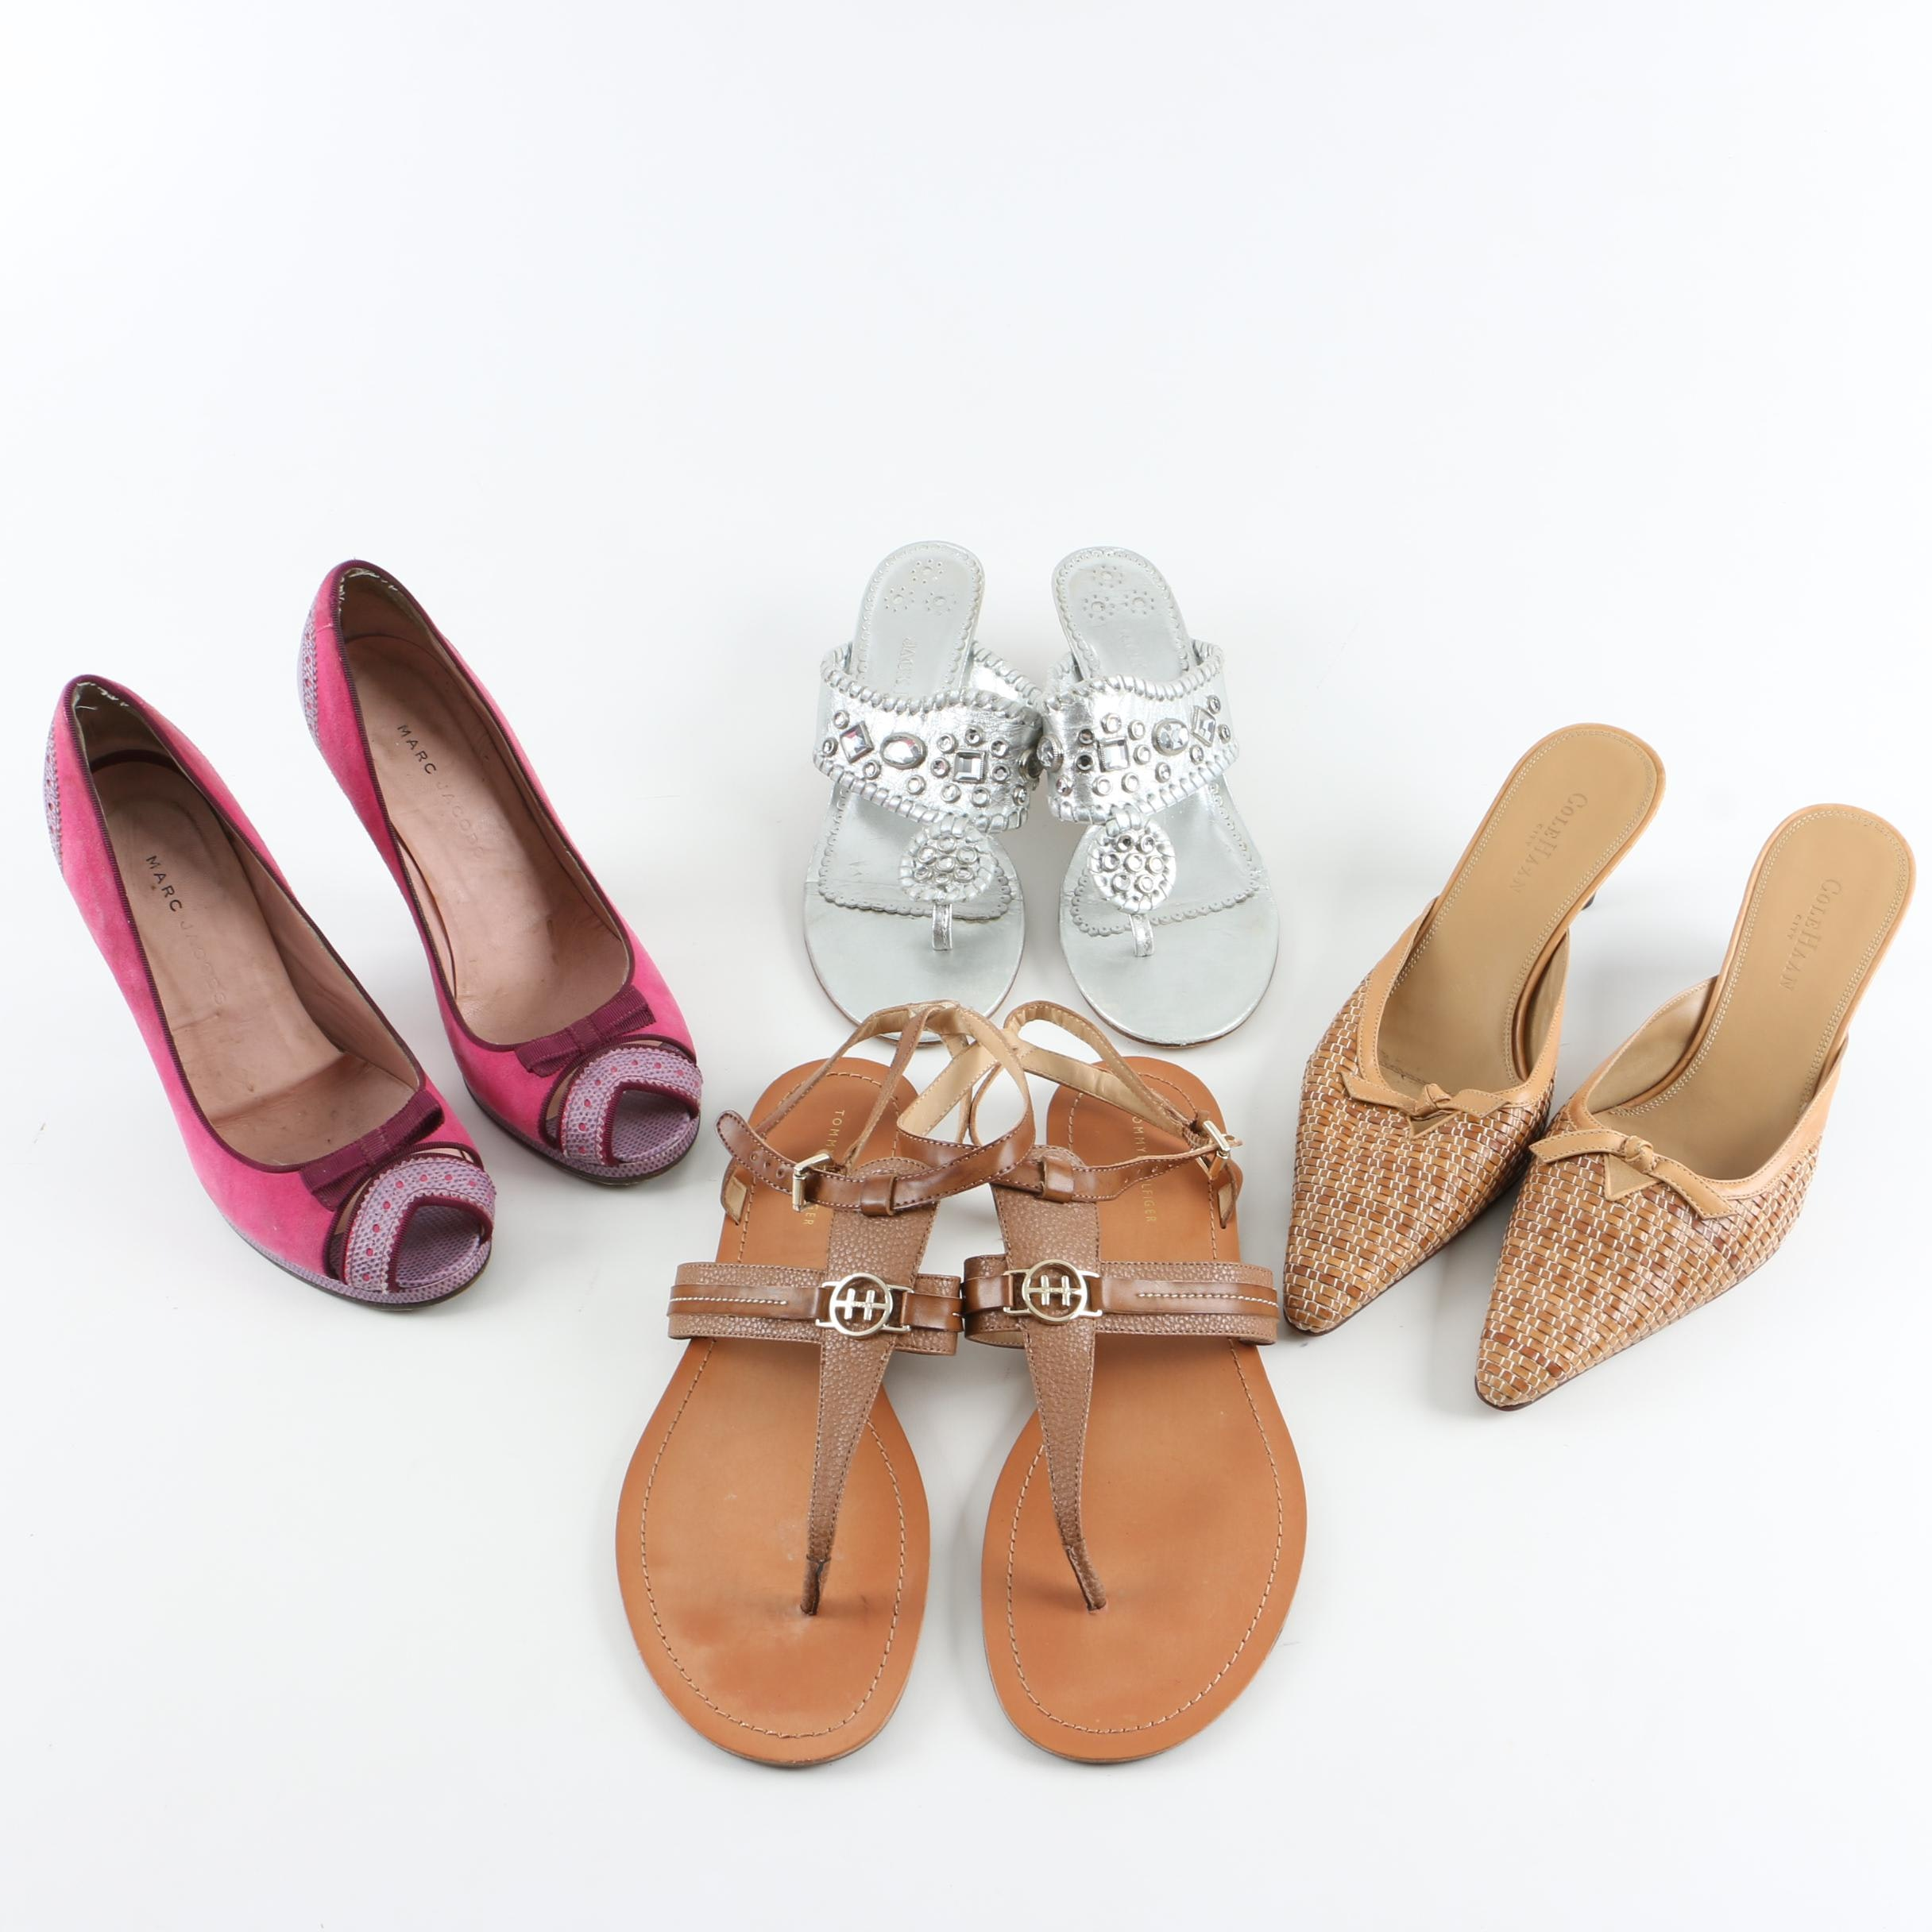 Women's Shoes Including Jack Rogers and Marc Jacobs